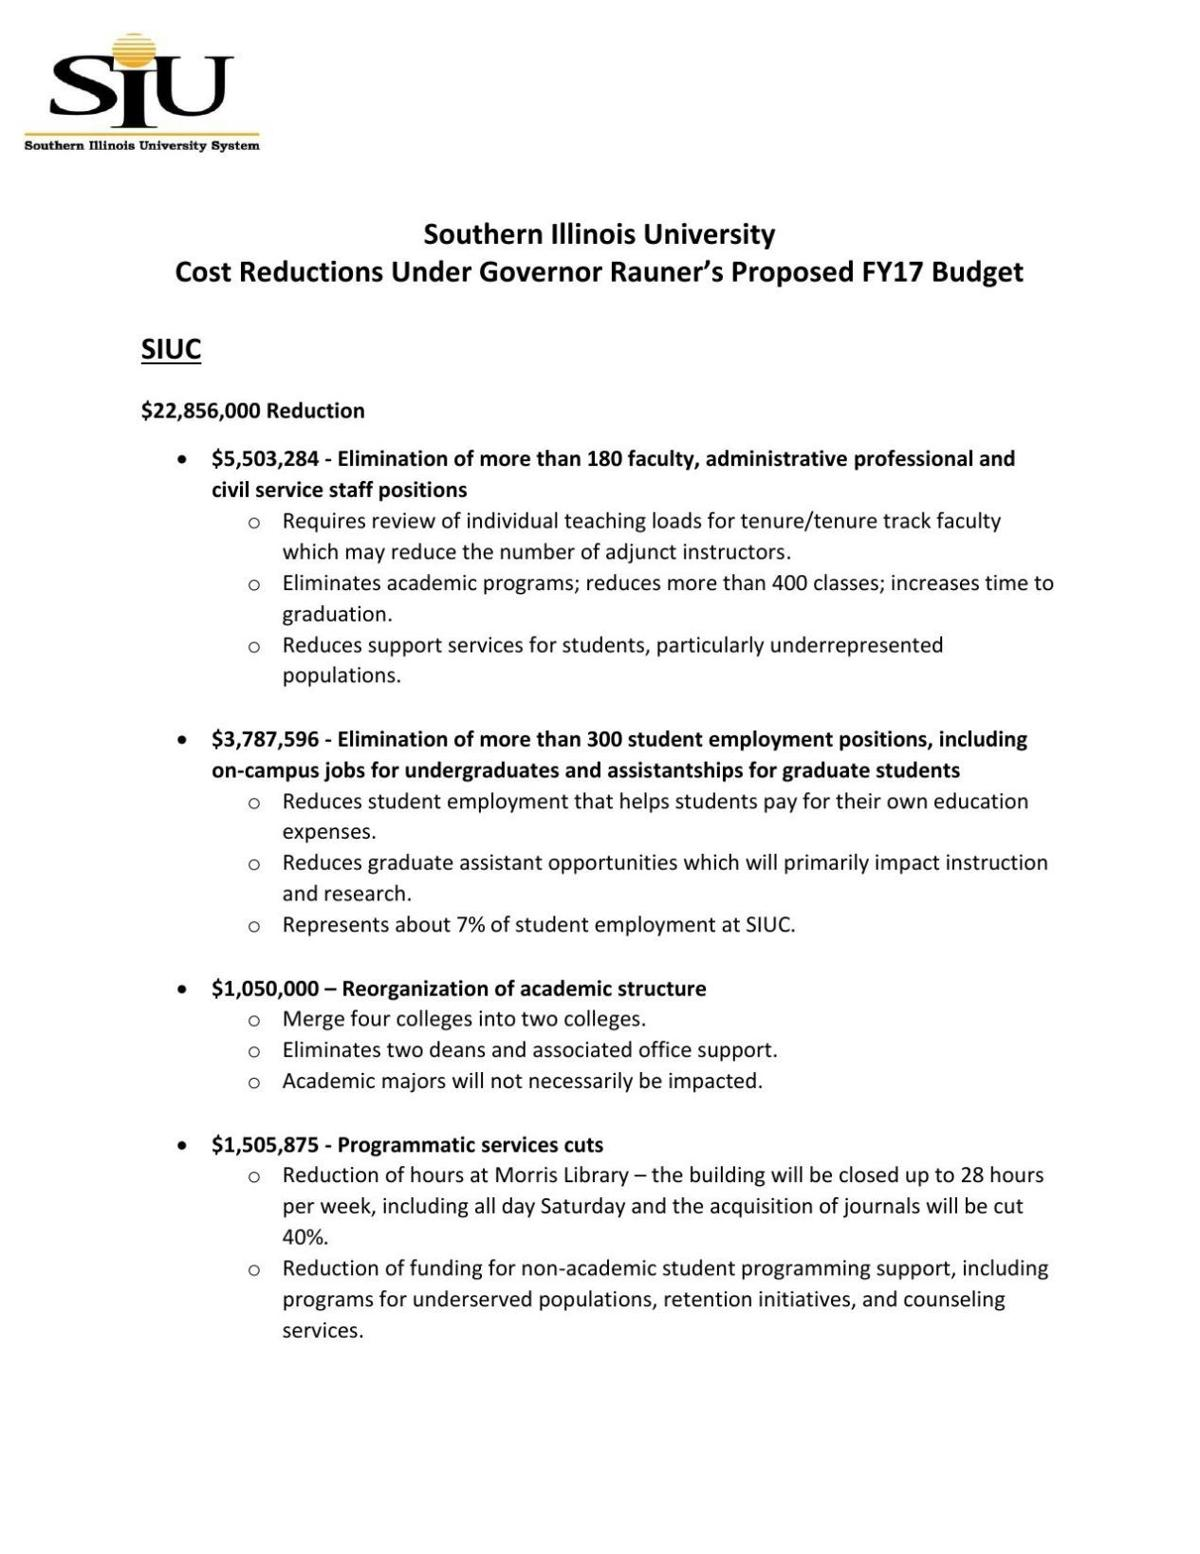 SIU Proposed Cuts, FY17